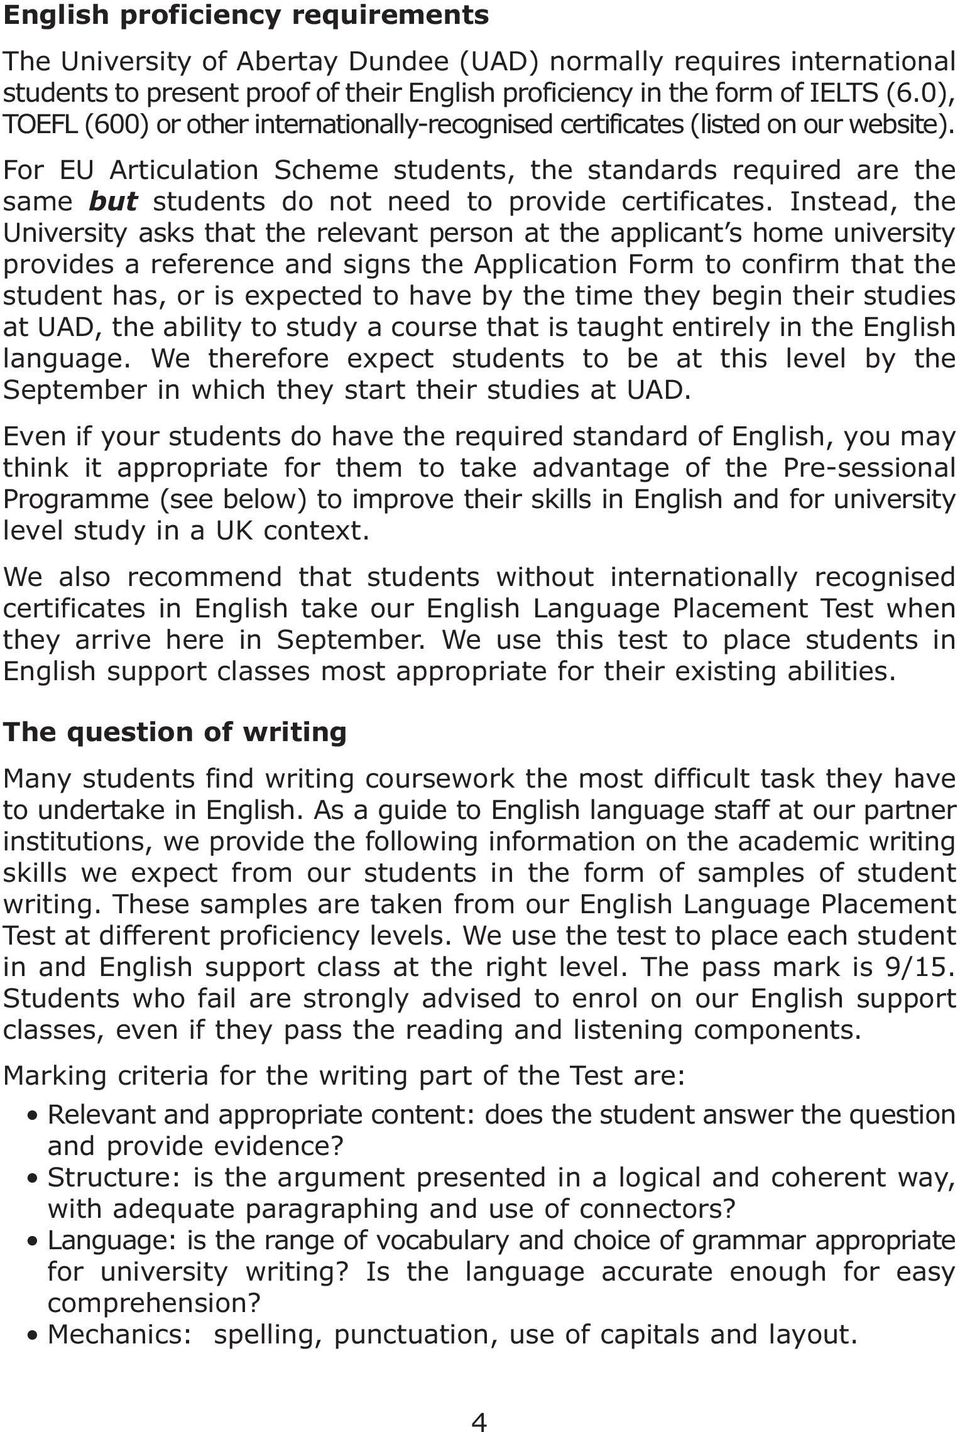 For EU Articulation Scheme students, the standards required are the same but students do not need to provide certificates.